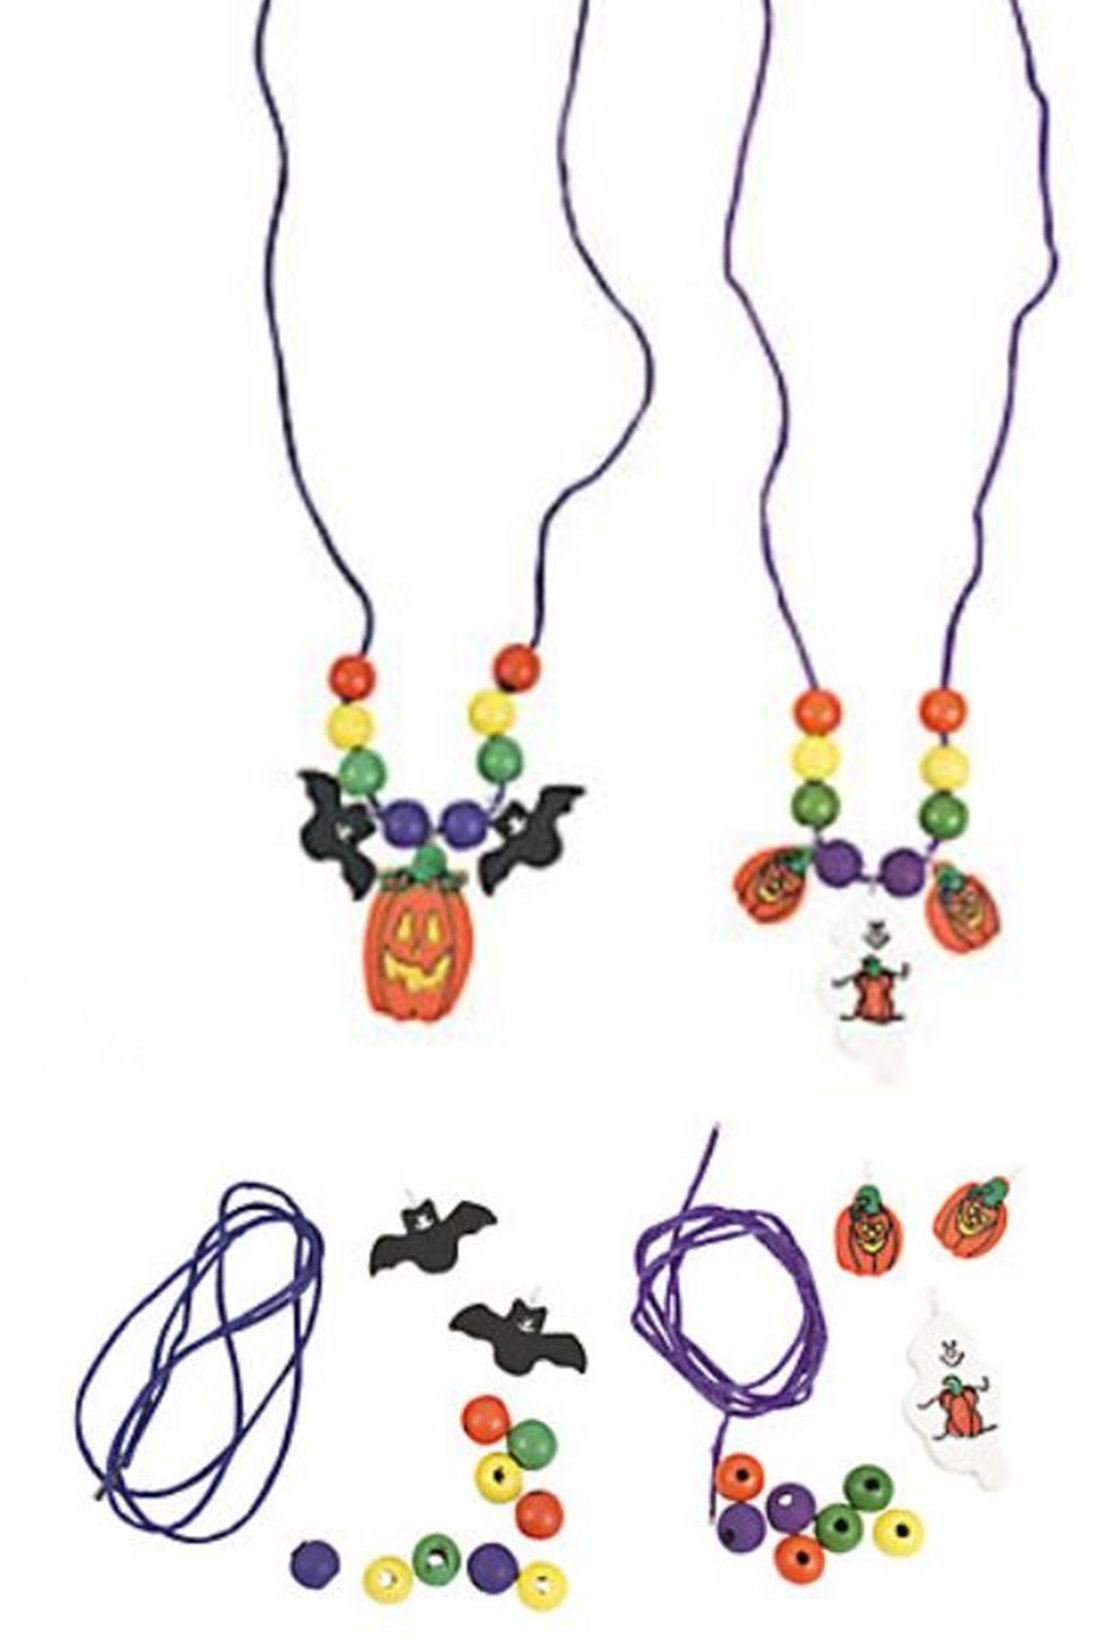 Wood Halloween necklace craft kits - 12 pack